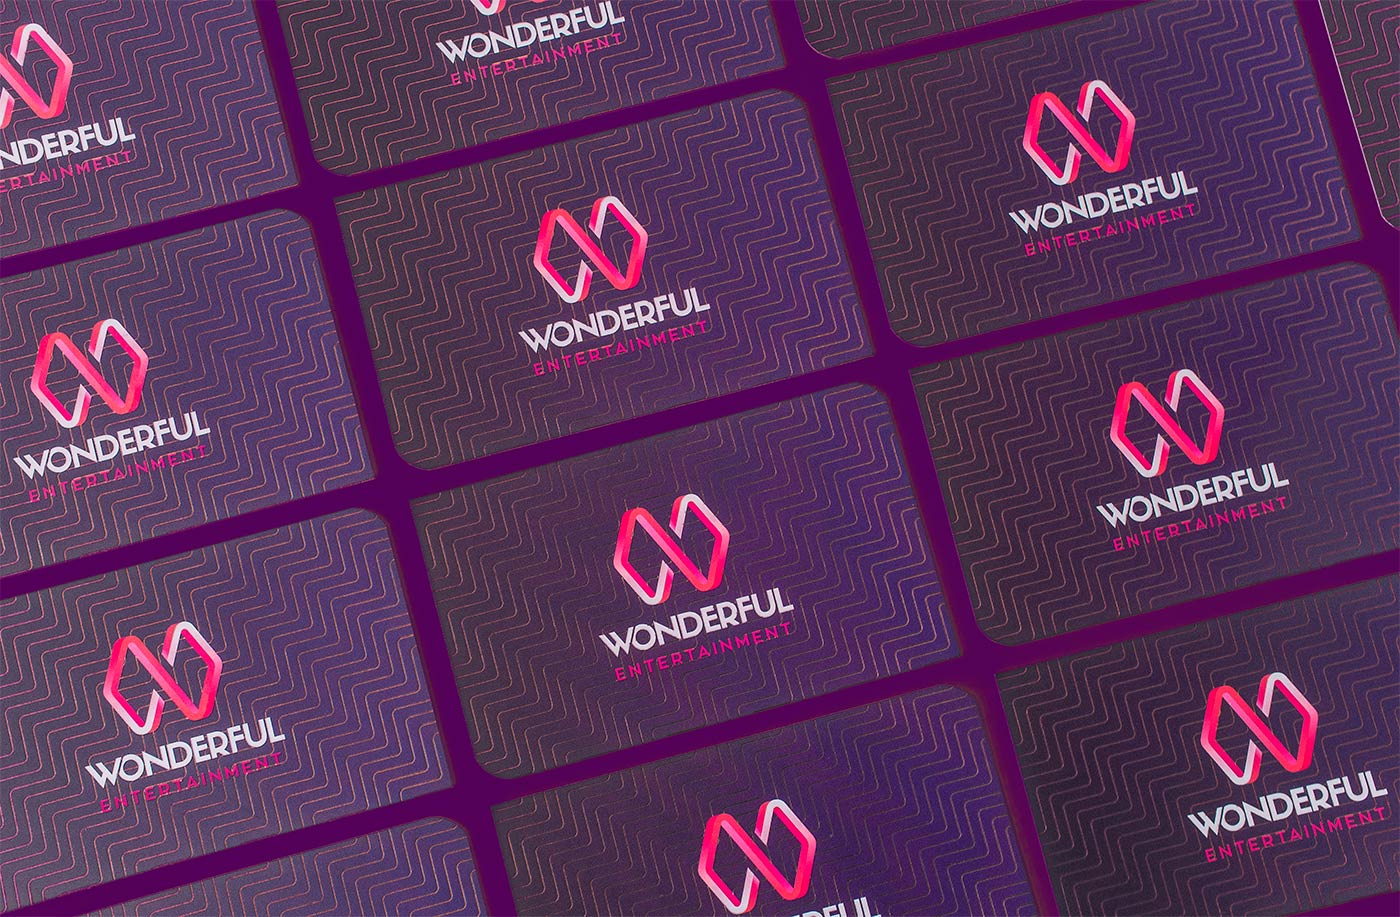 Outfit Branding & Design Wonderful Business Cards